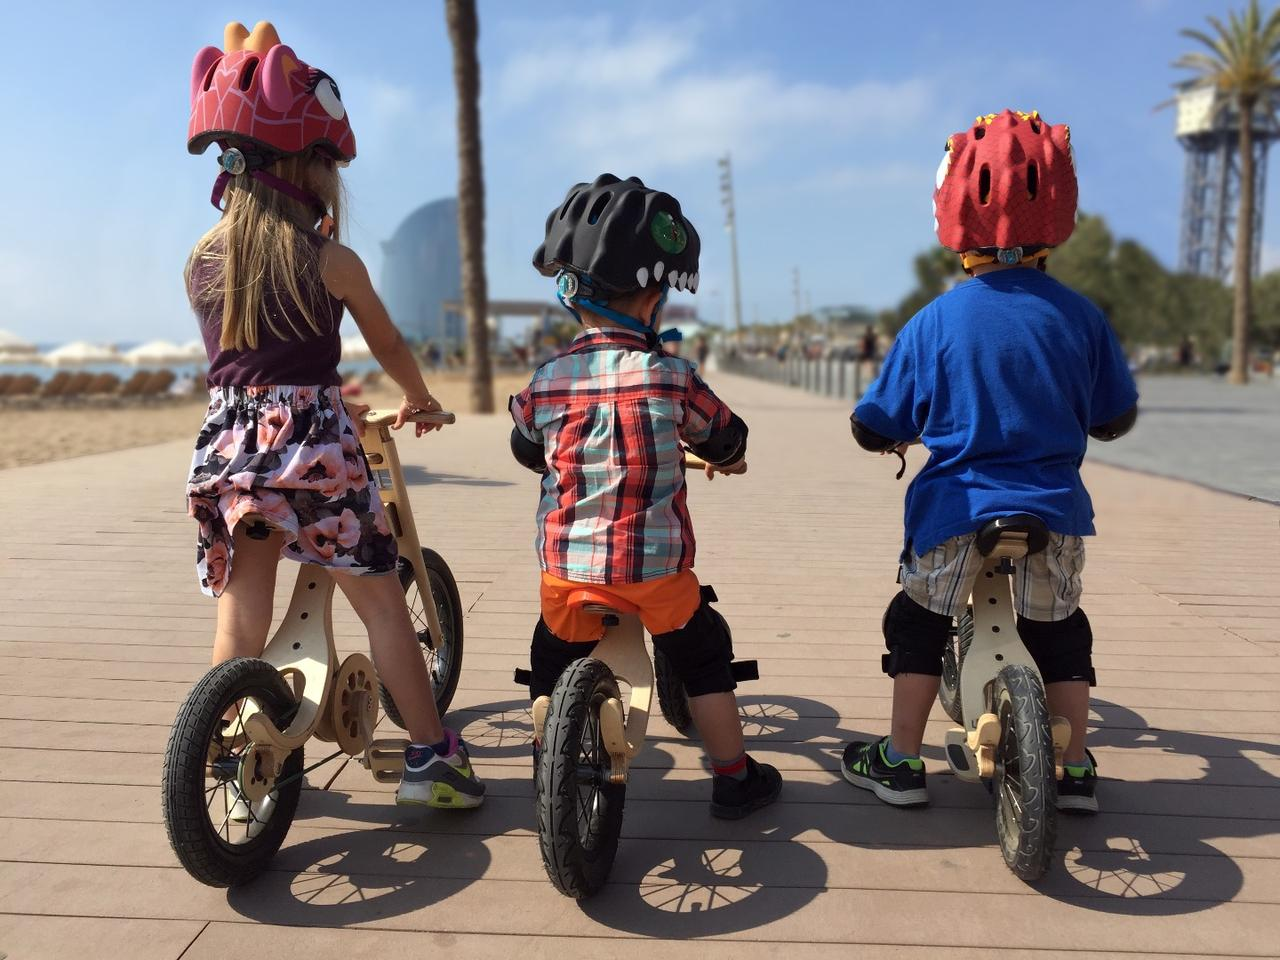 The Leg and Go bike is designed to ride as three styles of balance bike, a pedal bike and more